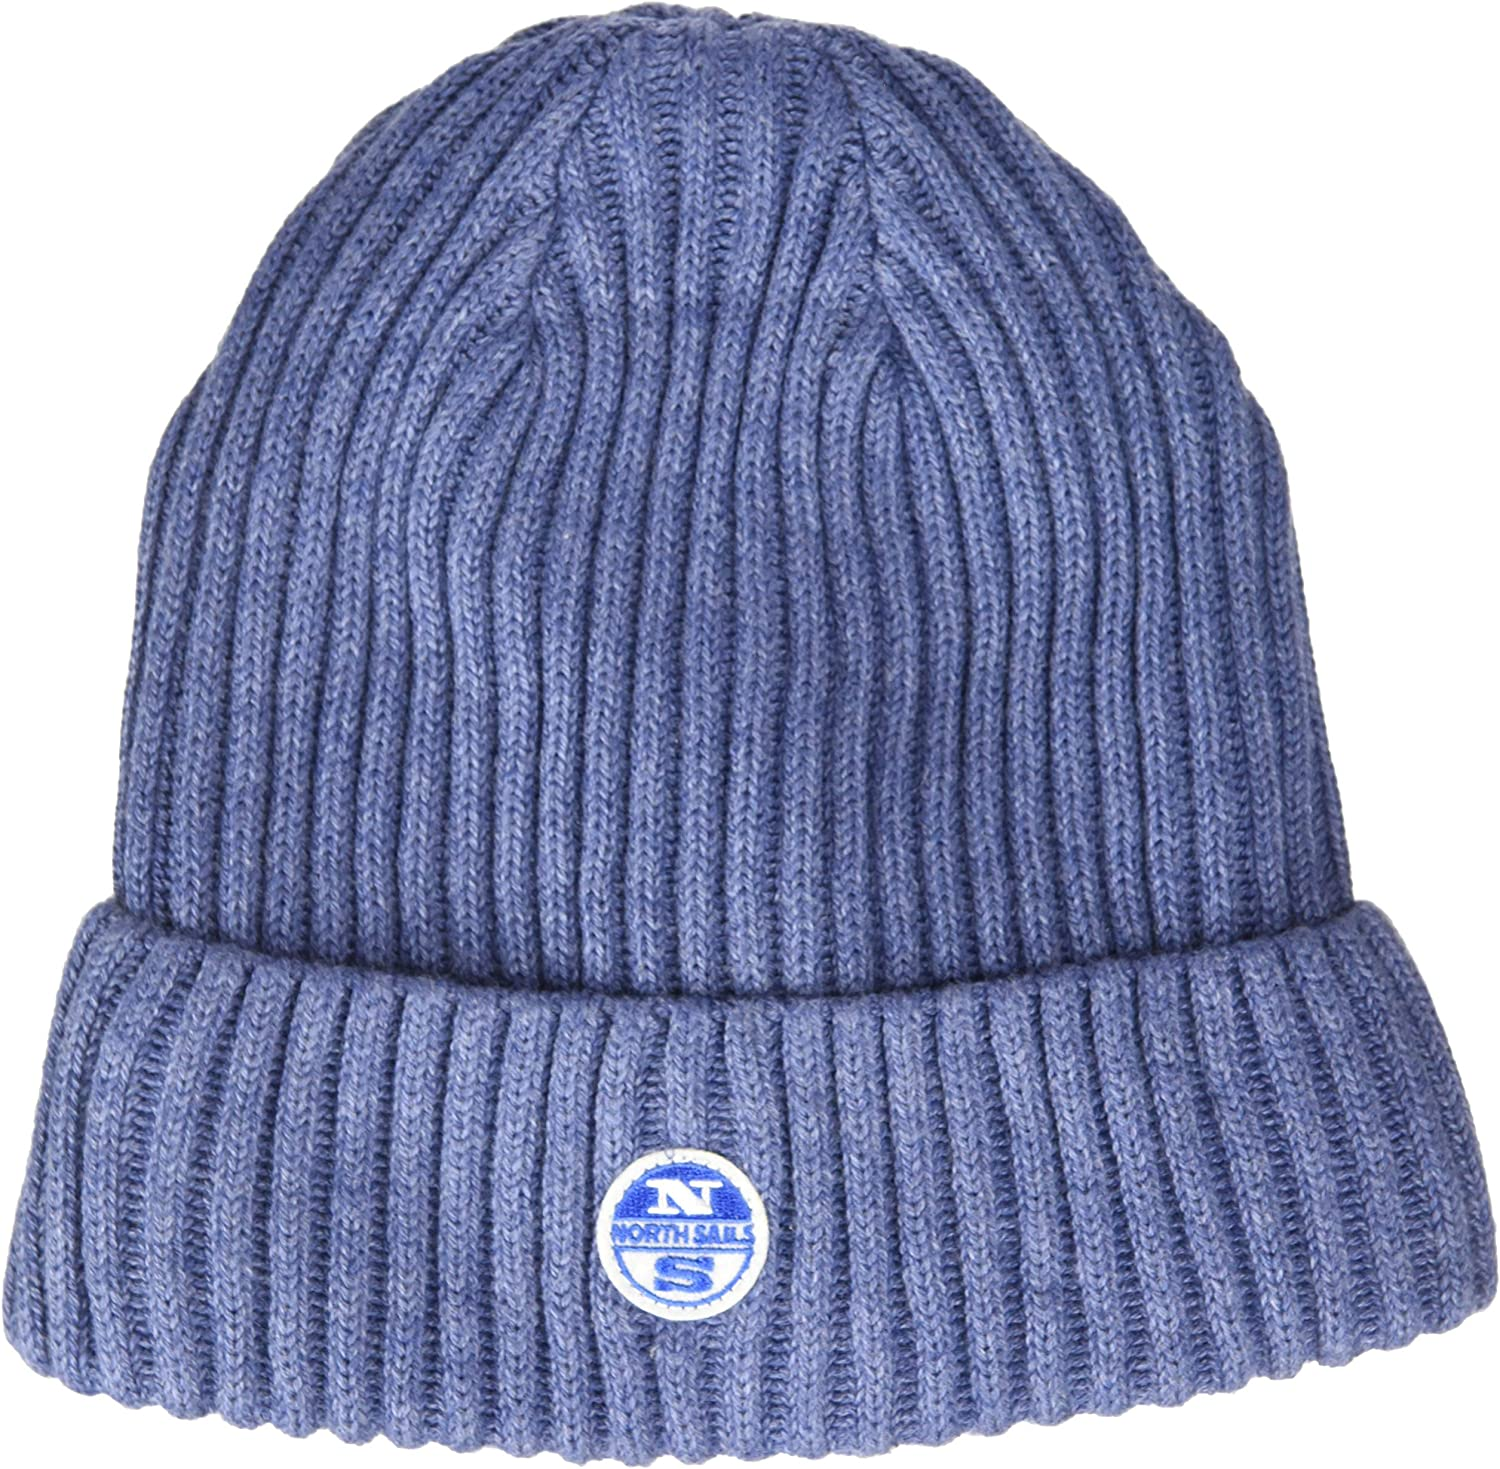 NORTH SAILS Fleece-Lined Beanie